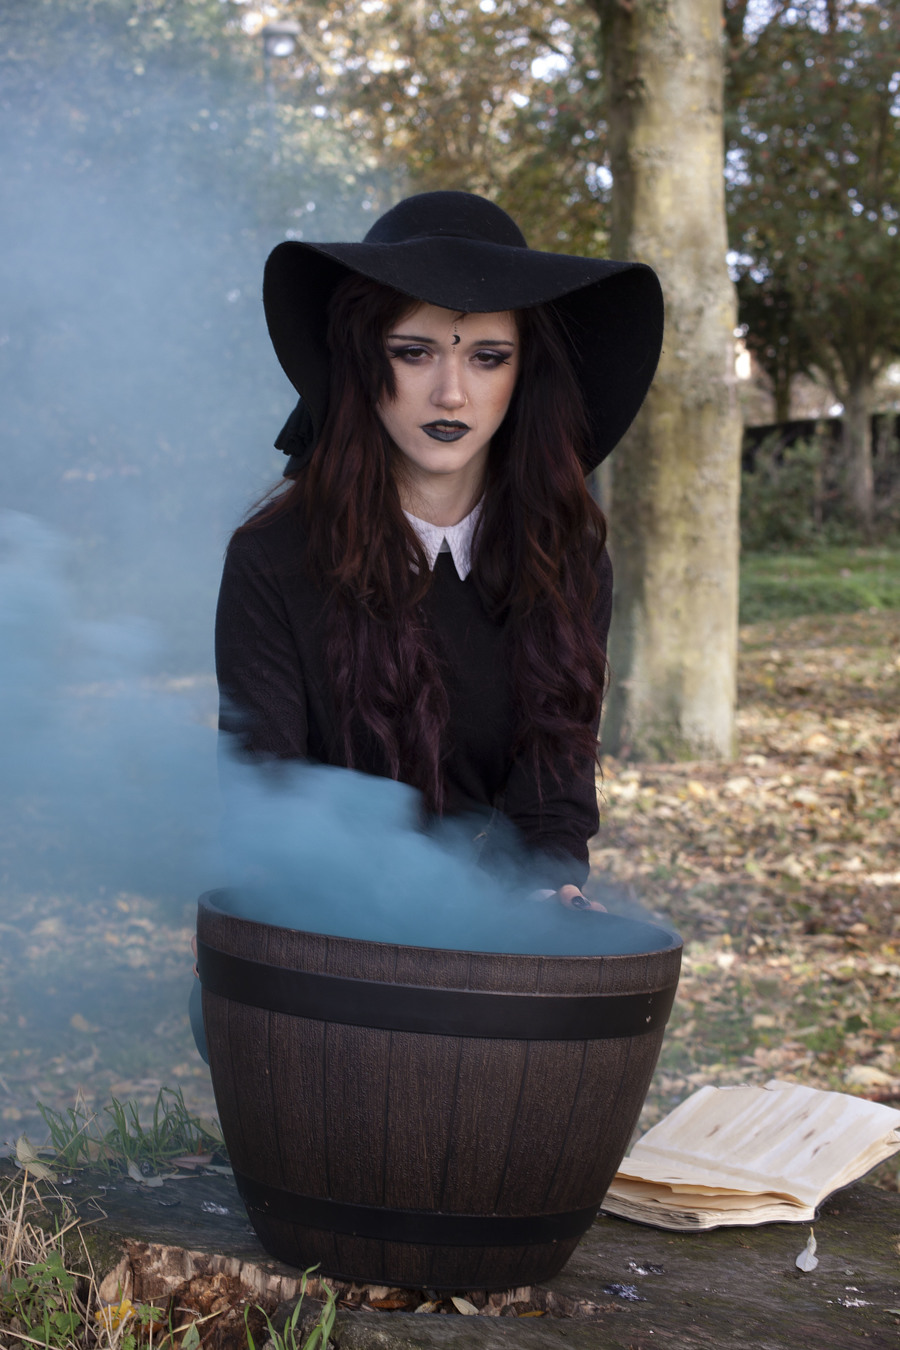 The Witches Coudron / Photography by Fenland Photographic, Model Megan Annie / Uploaded 13th October 2018 @ 01:05 AM